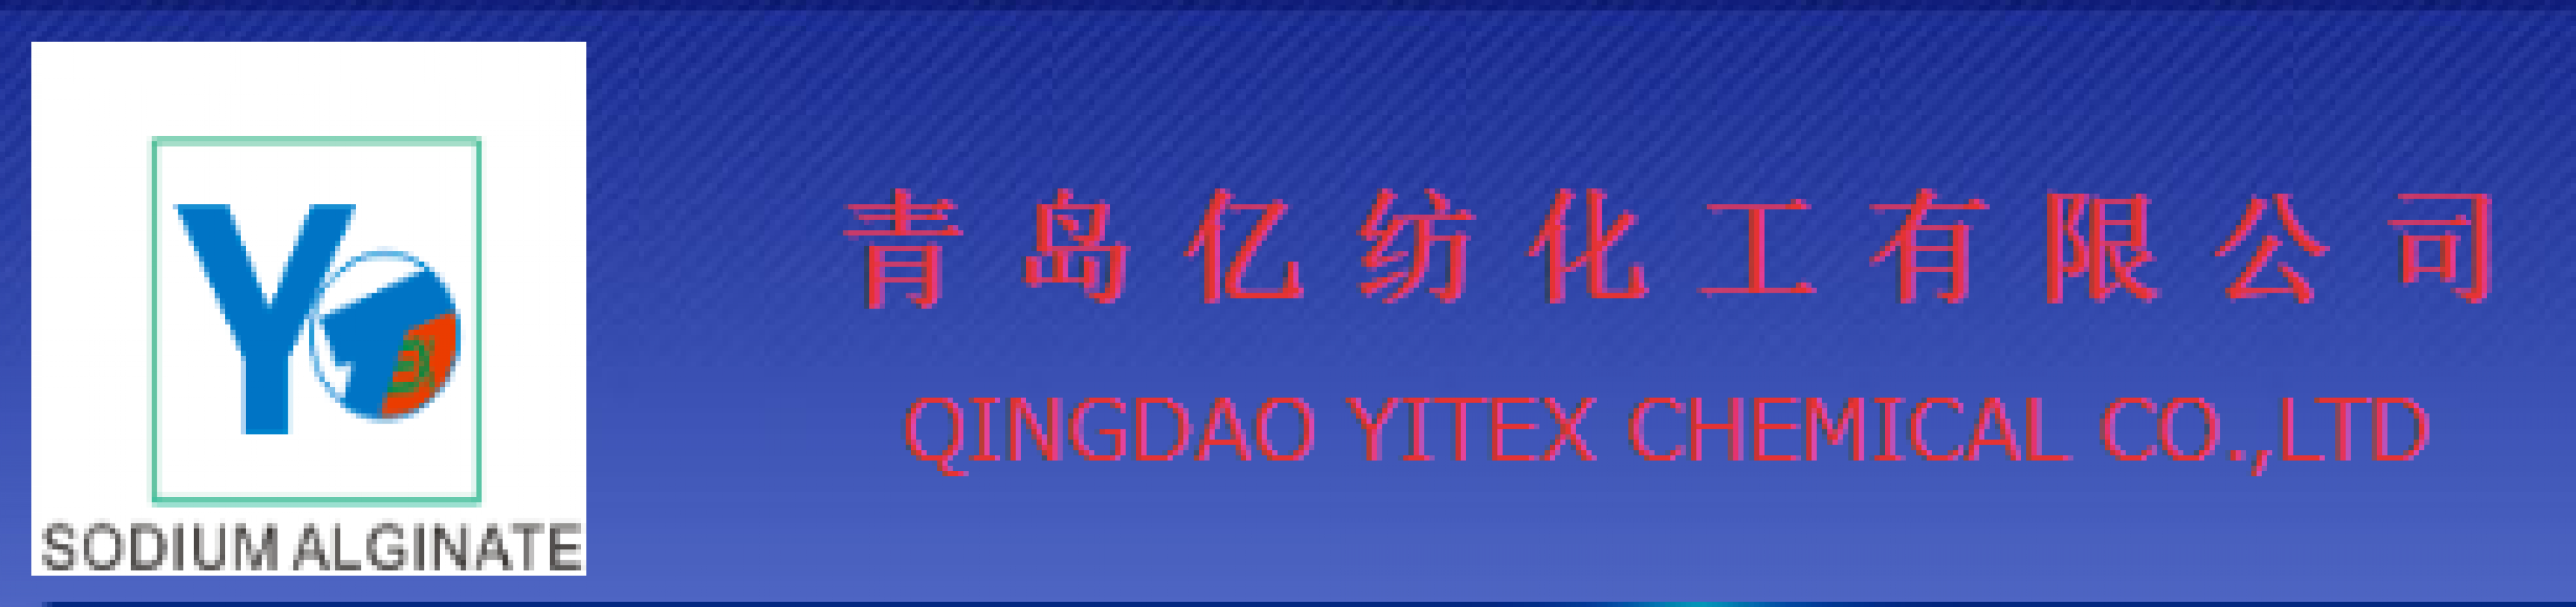 QINGDAO YITEX CHEMICAL CO., LTD.